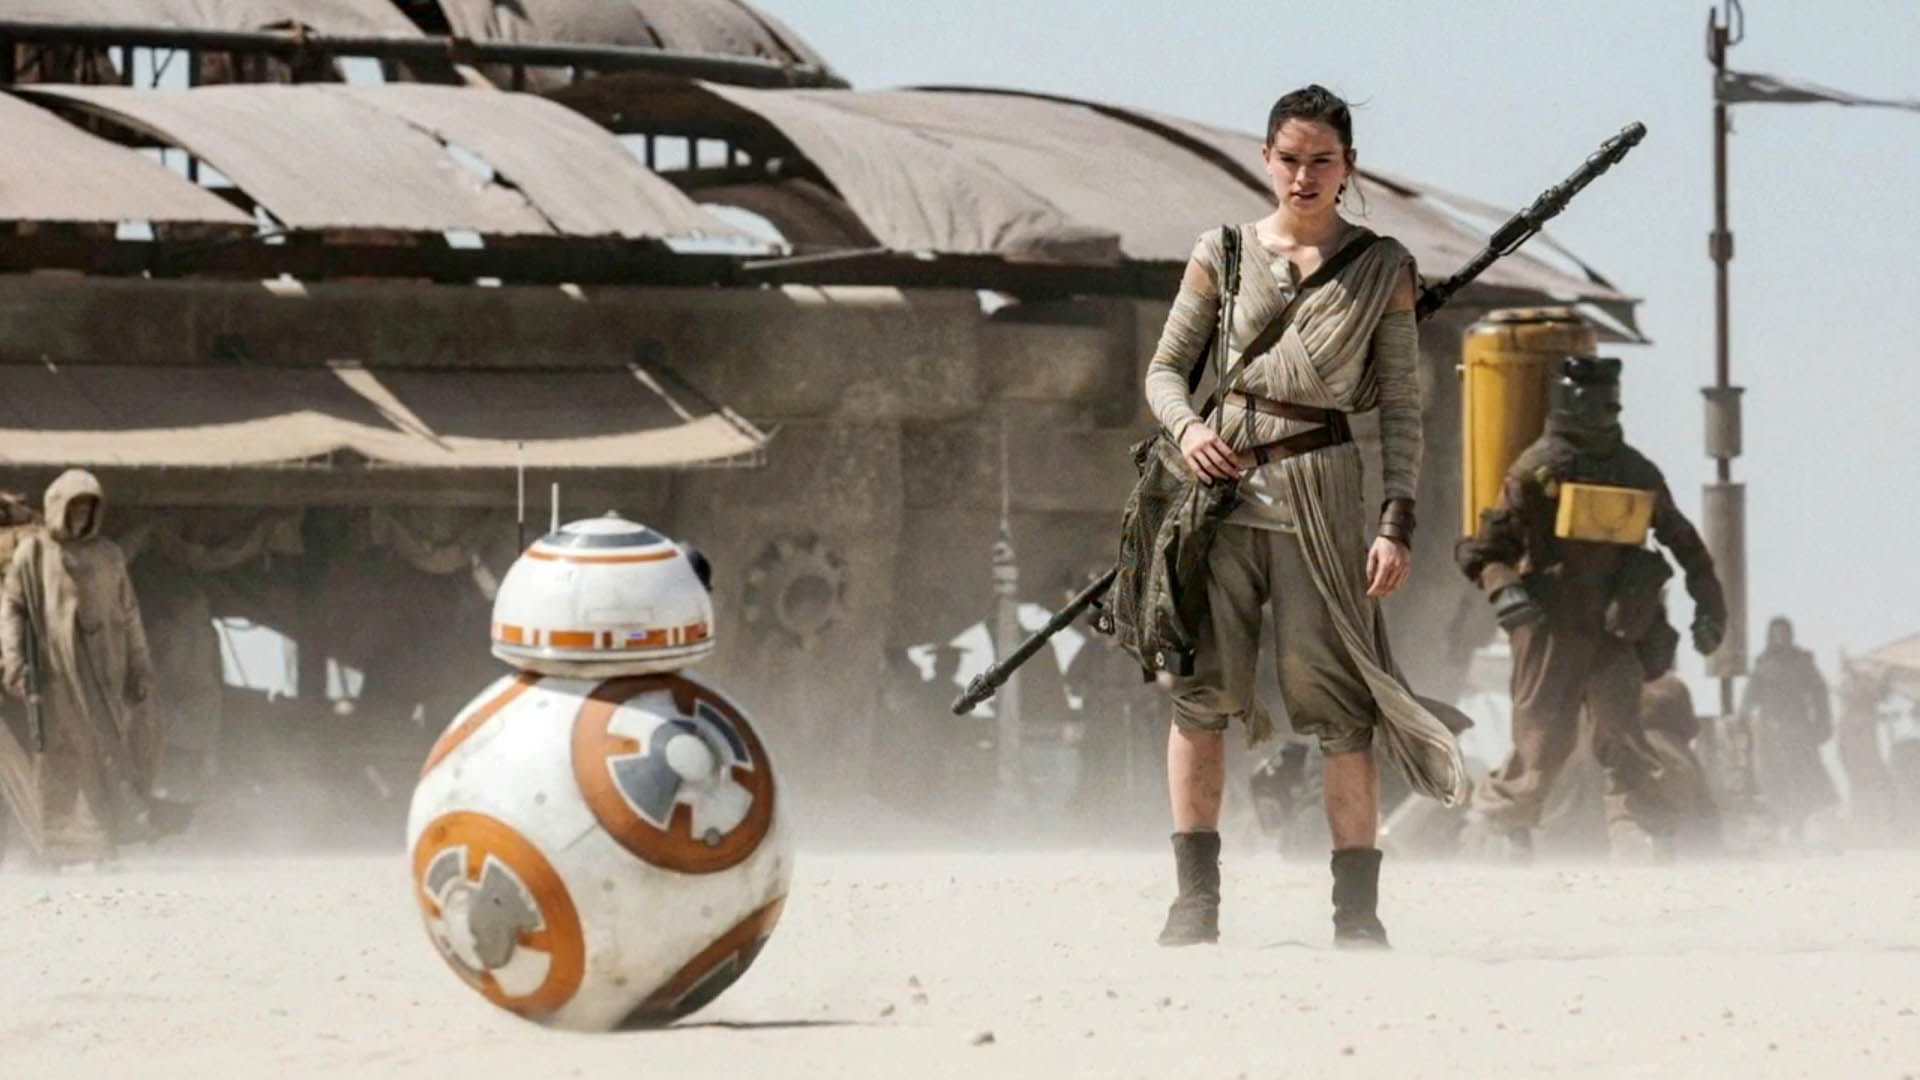 BB-and-Rey-Star-Wars-The-Force-Awakens-1920x1080-wallpaper-wp3603032